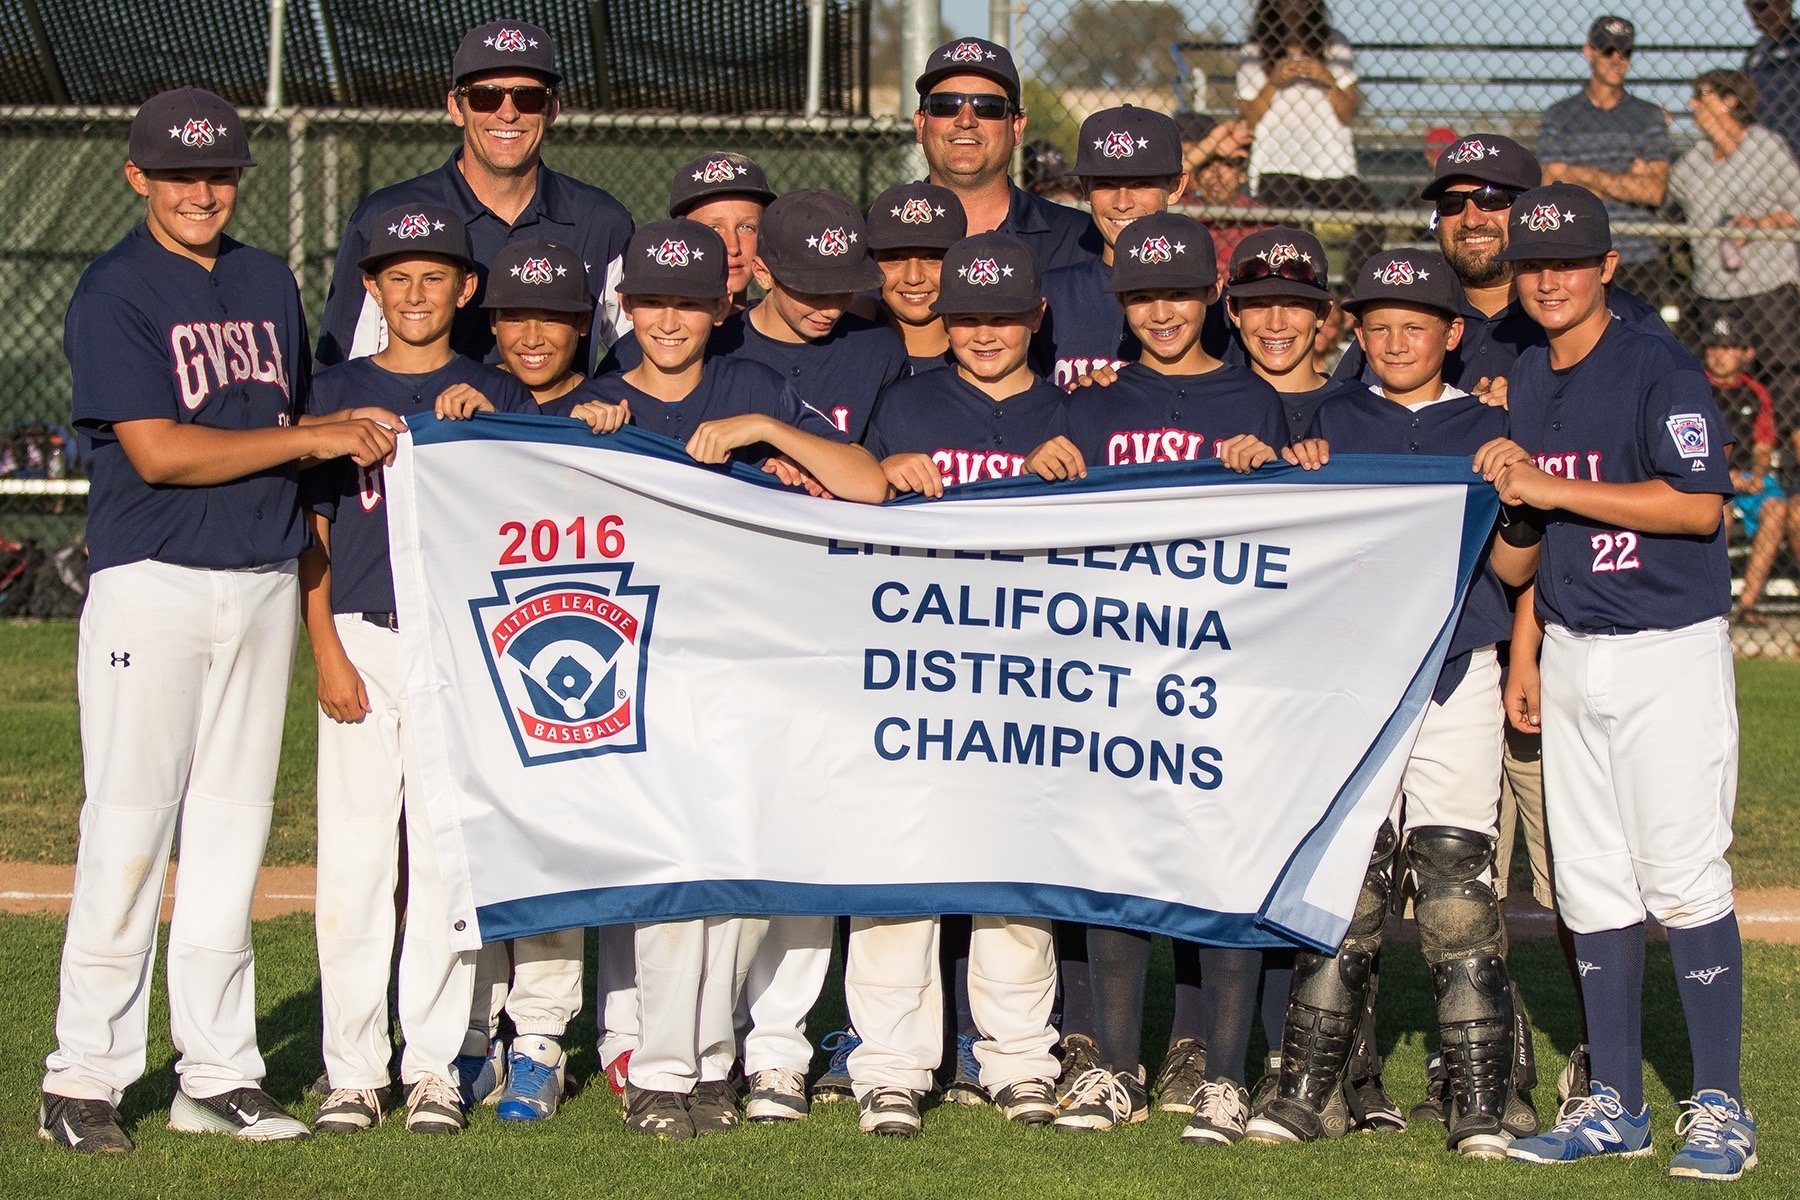 The Goleta Valley South Little League 12-under All-Star team celebrates after winning a District 63 title on Wednesday evening at Girsh Park.